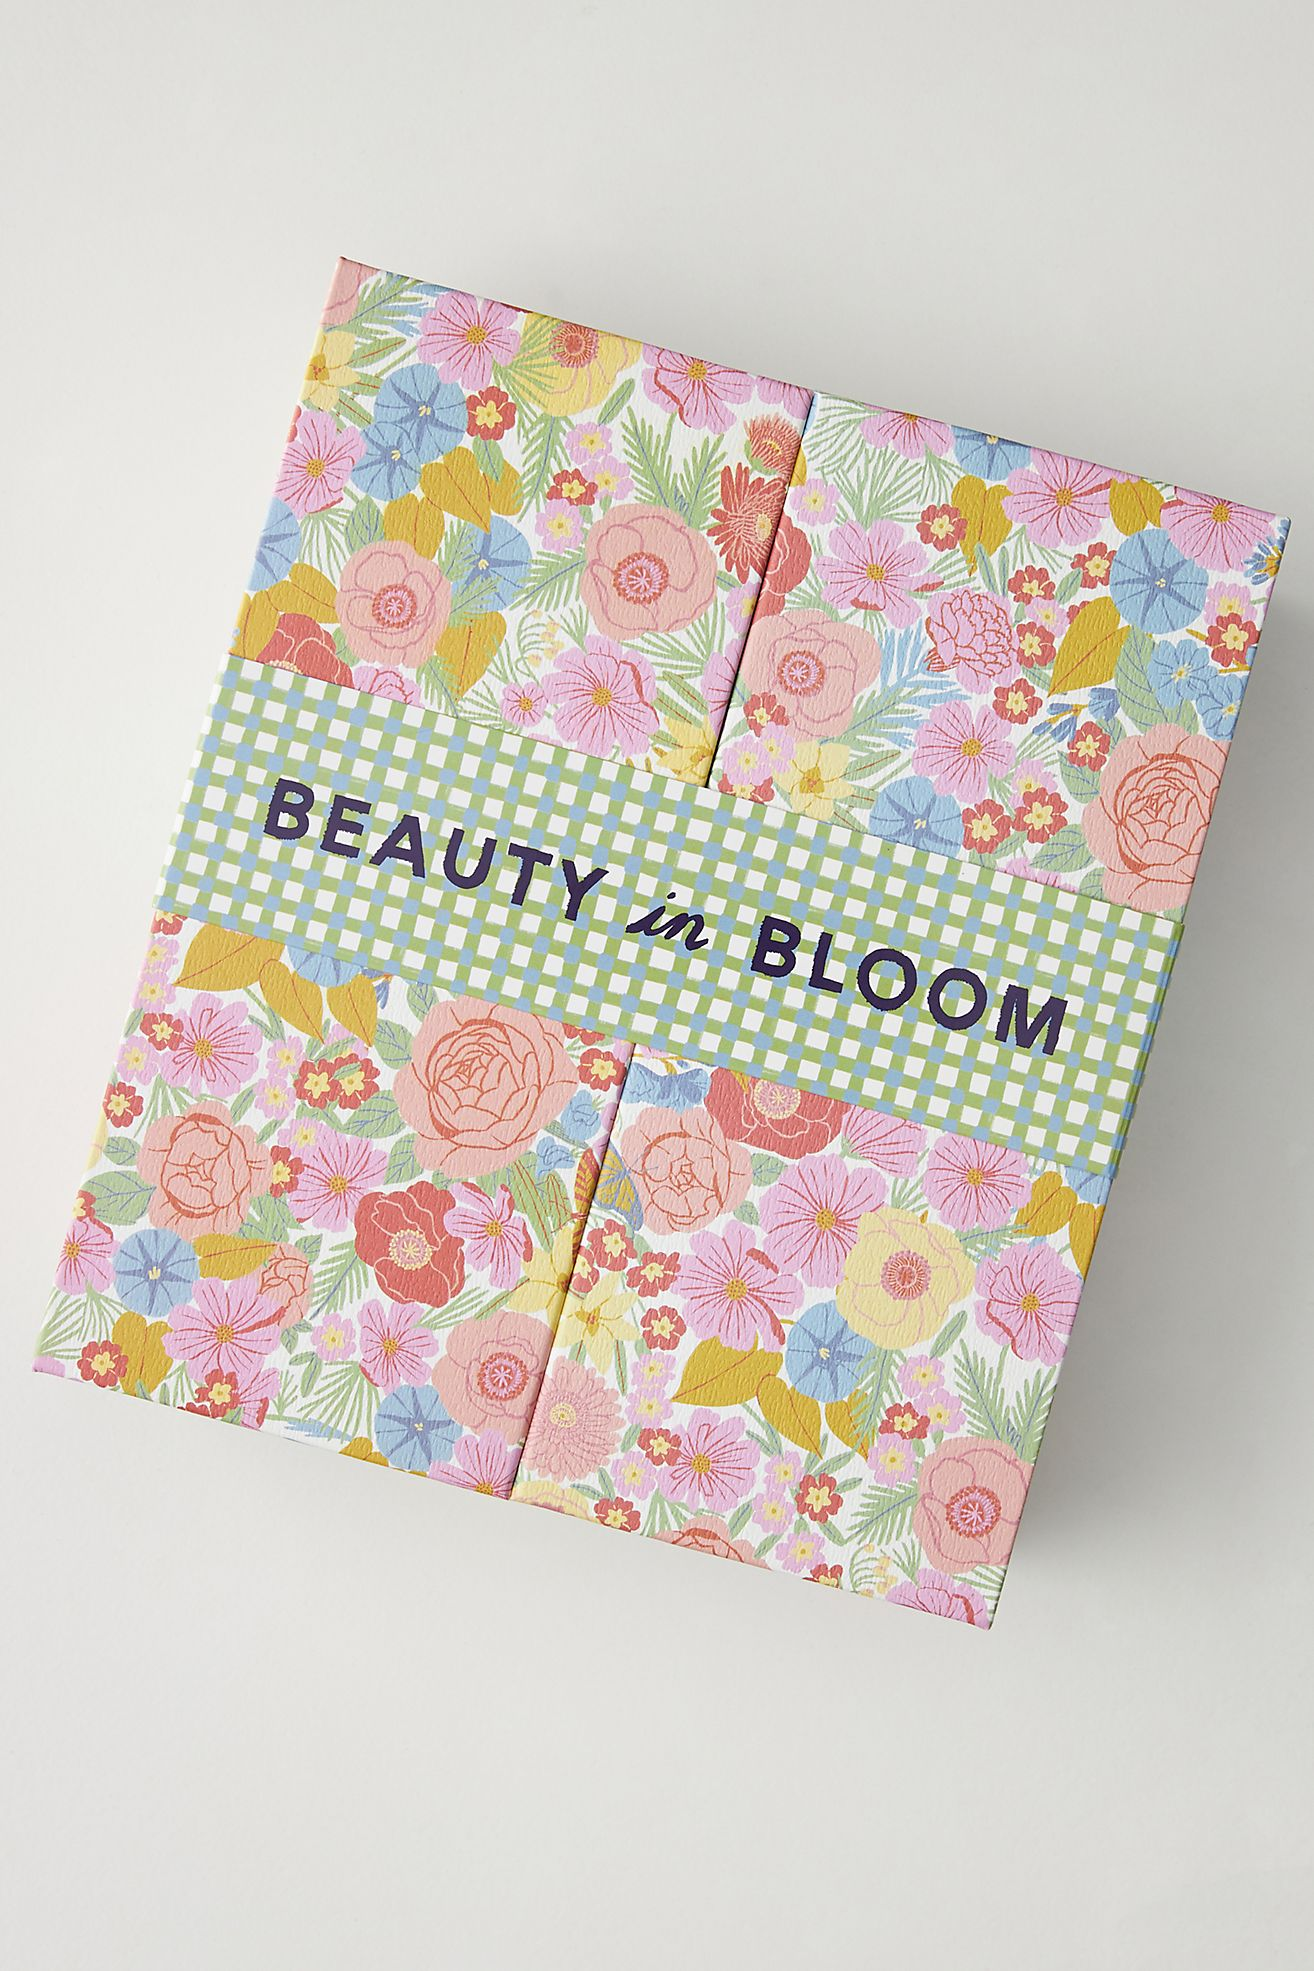 Anthropologie Beauty In Bloom Mother's Day Gift Set Advent Calendar – Save 20%!